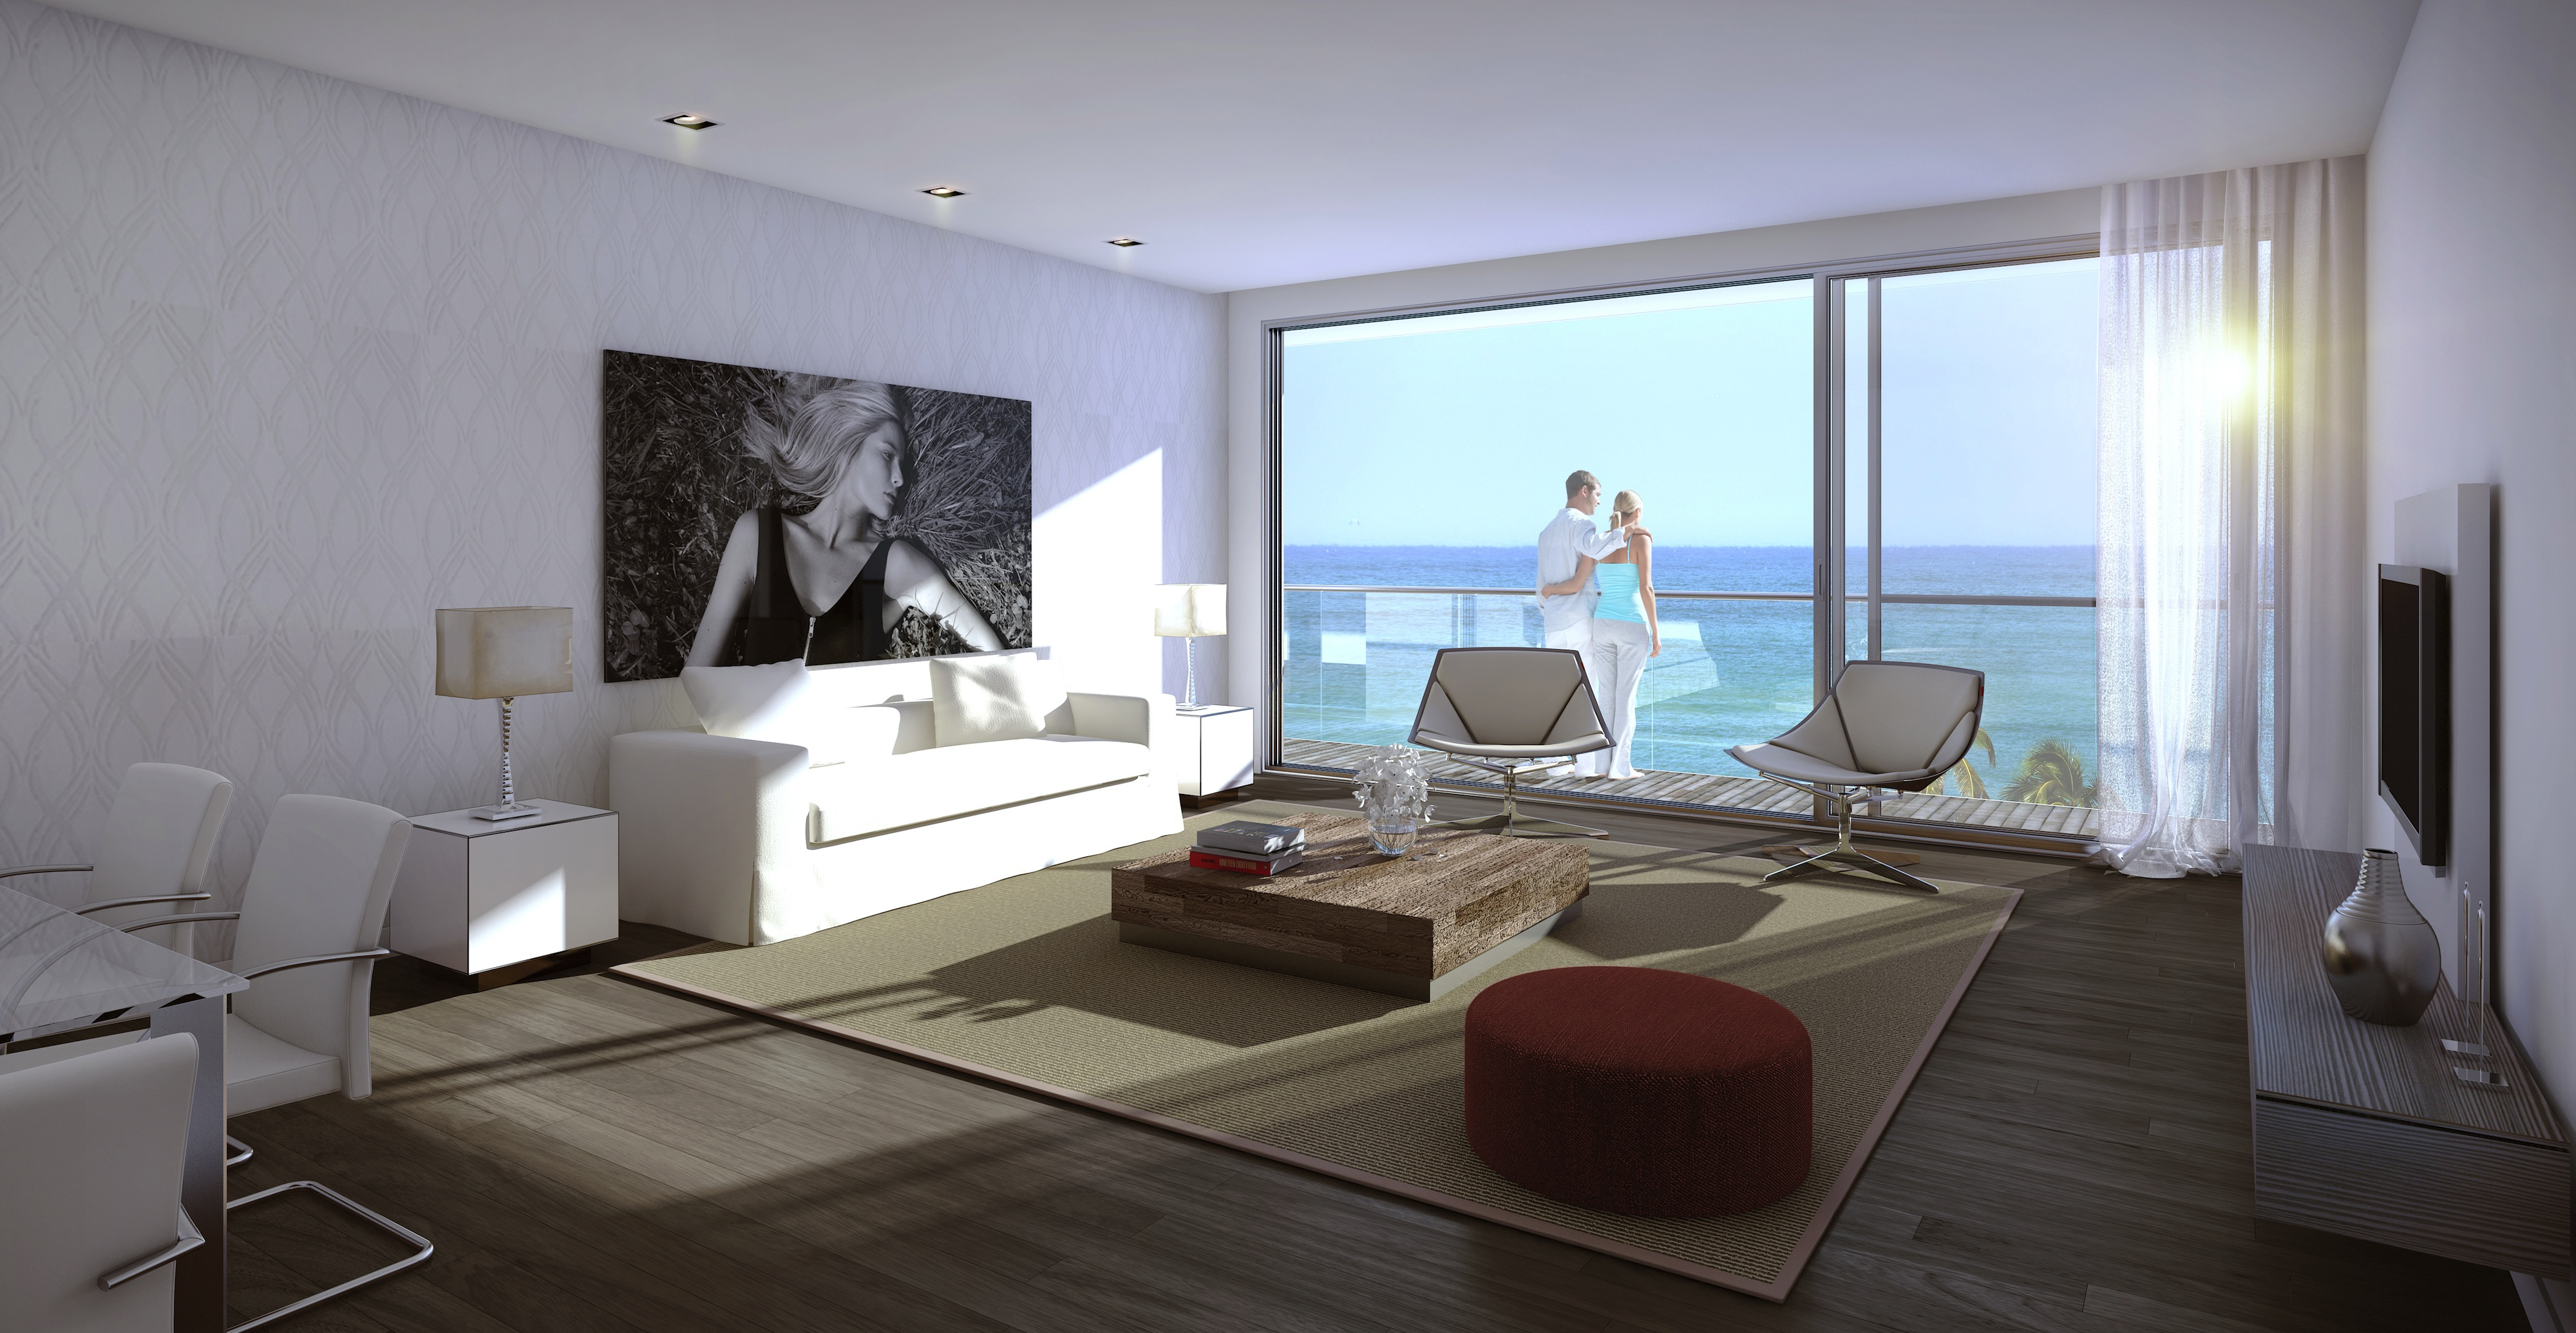 The condo hotel suites will have glass balconies with views of the ocean.